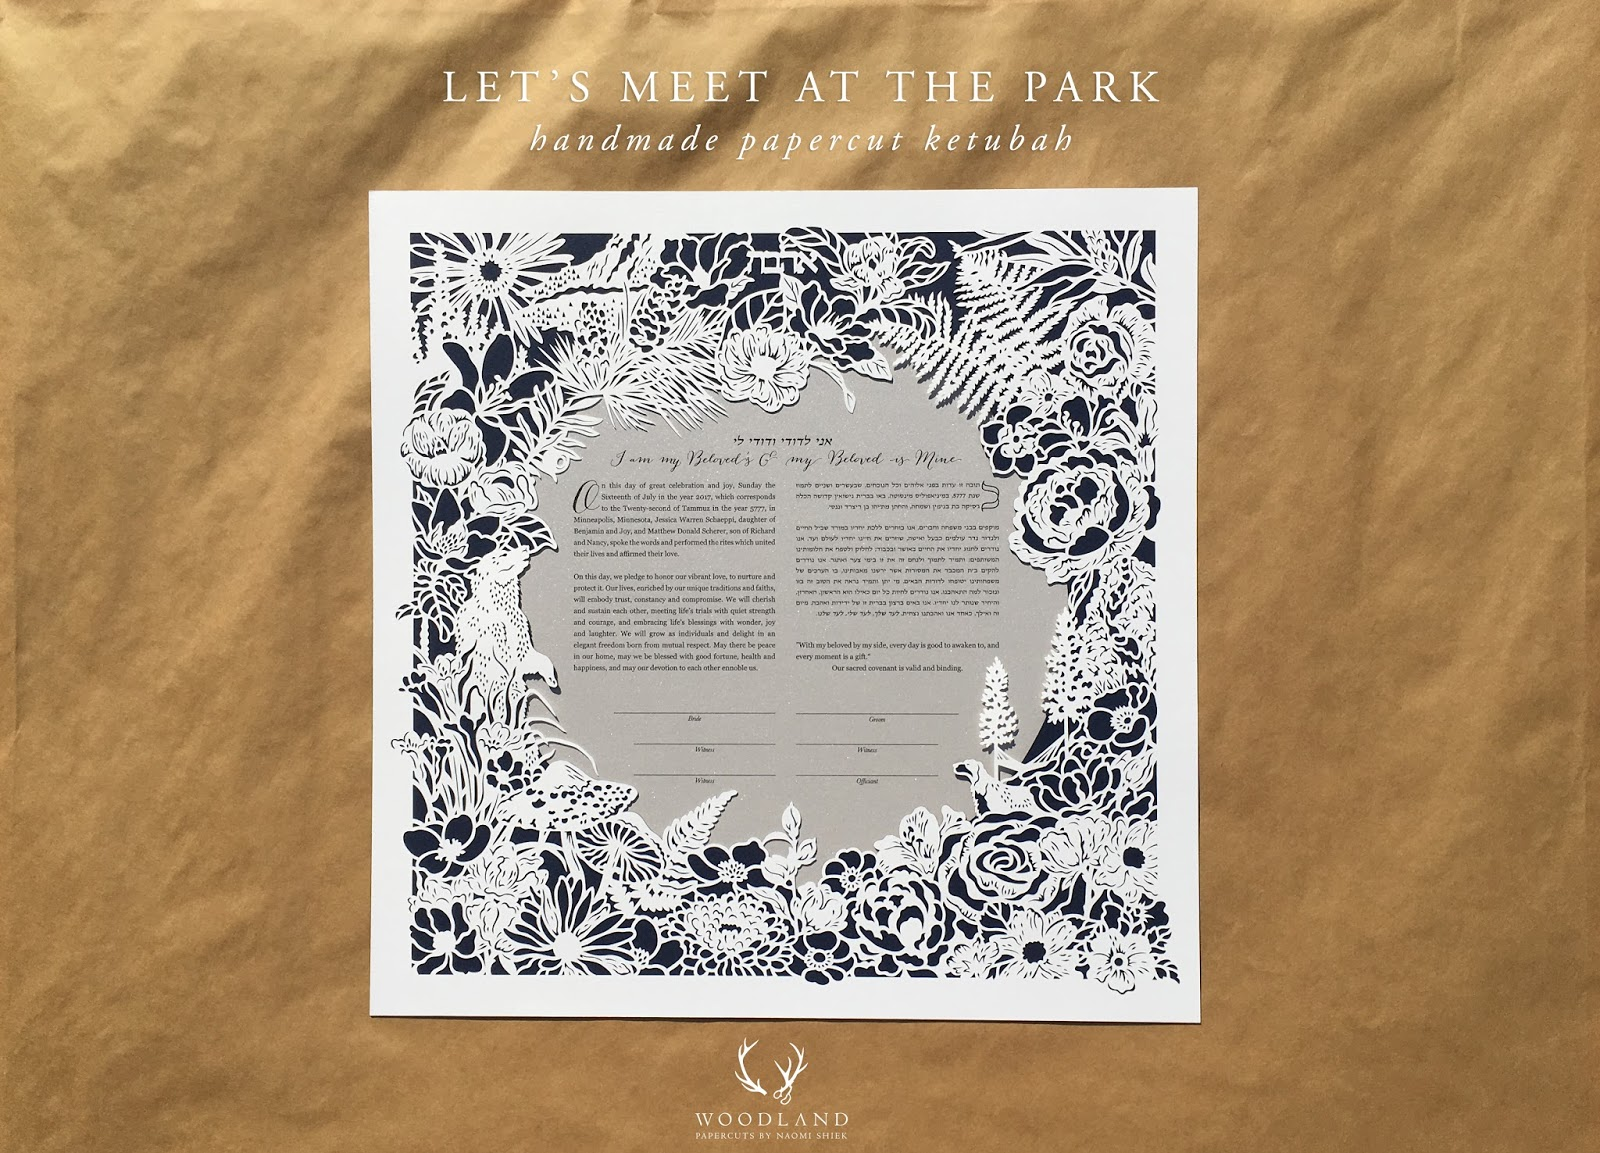 handmade papercut ketubah custom design for sale